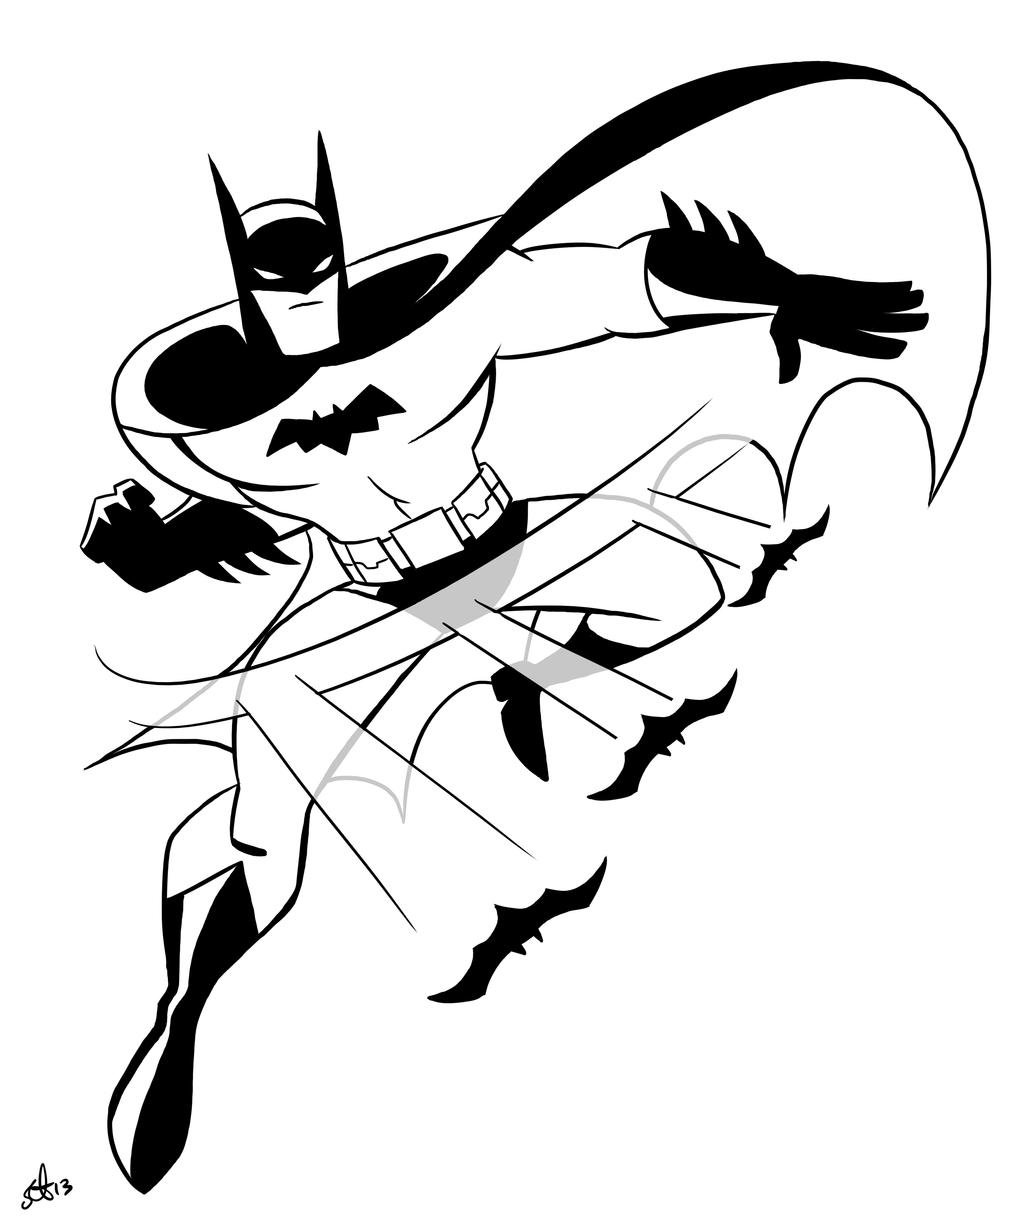 Batman Animated Justice League throwing batarangs by scootah91